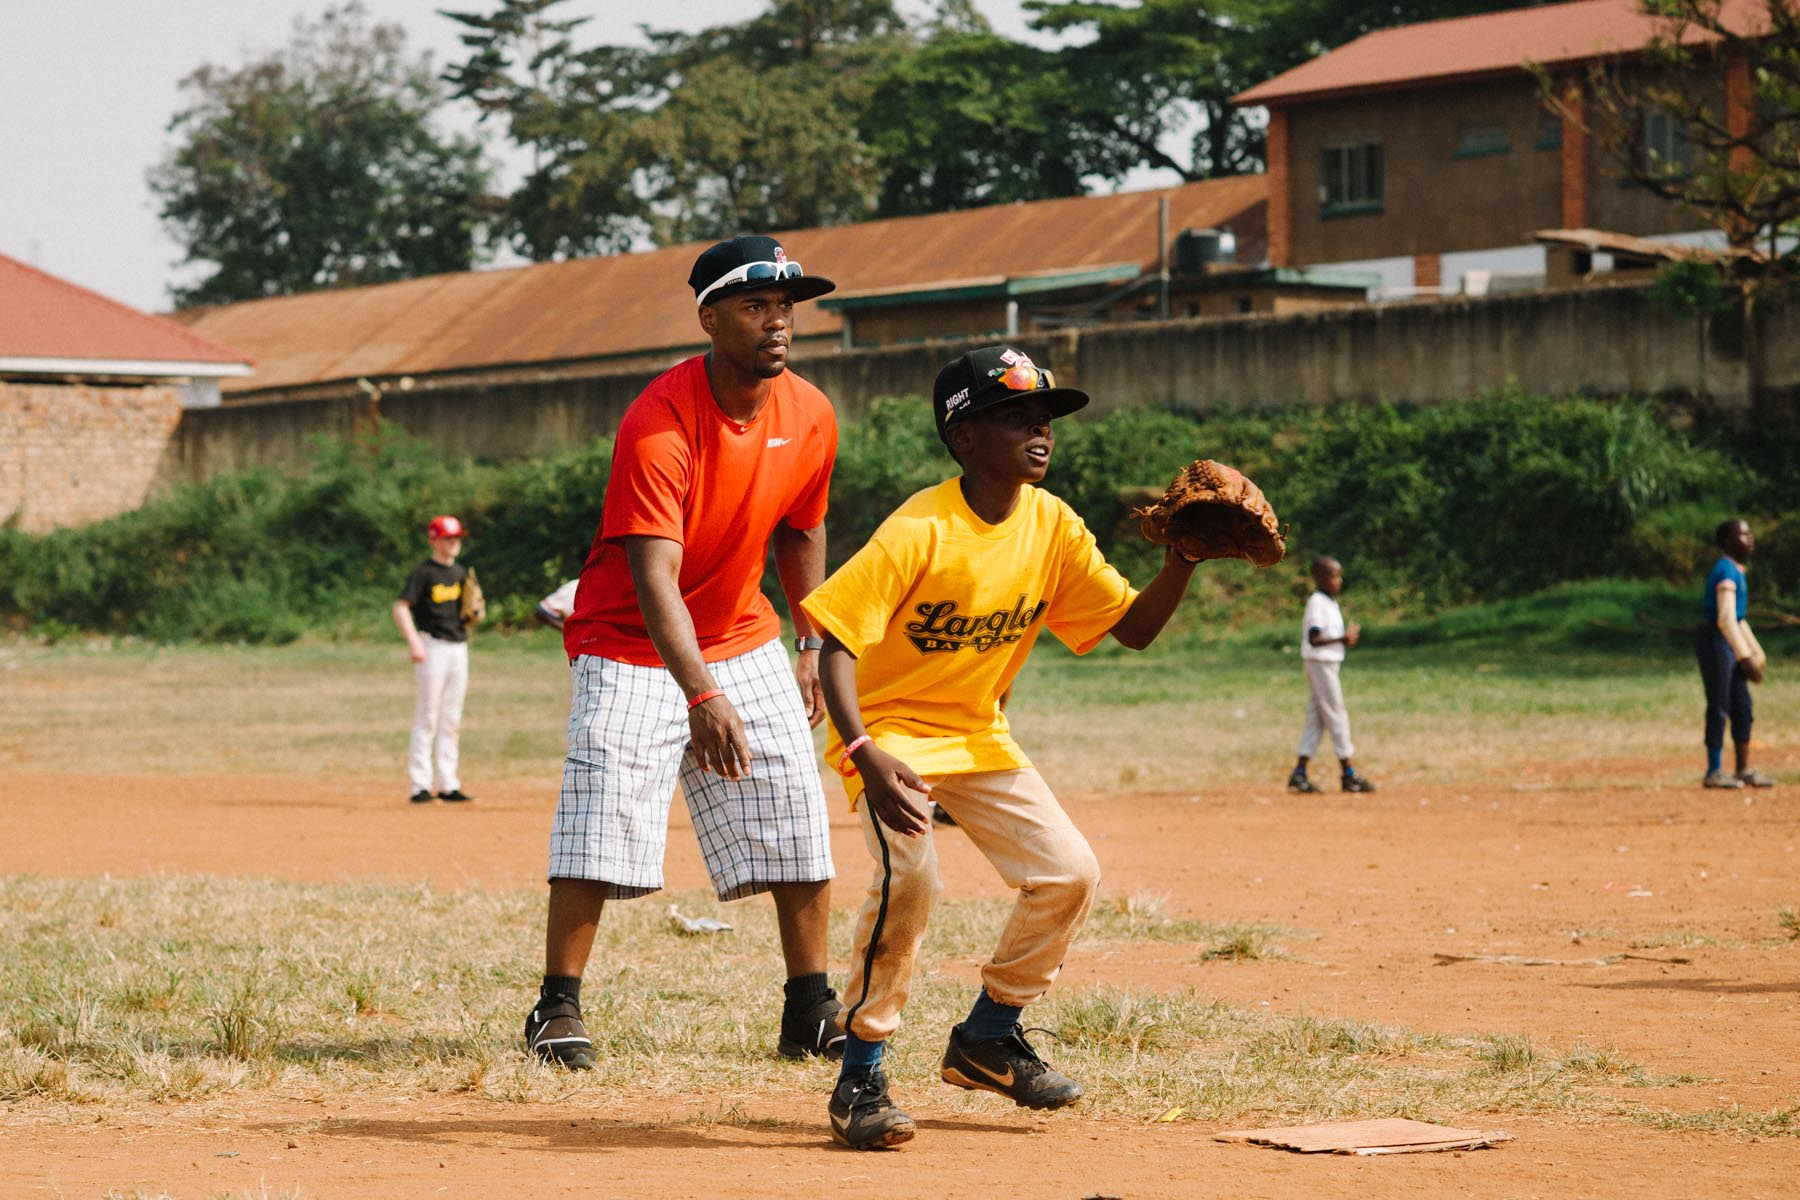 HKP-UgandaBaseball-Day3-9900.jpg